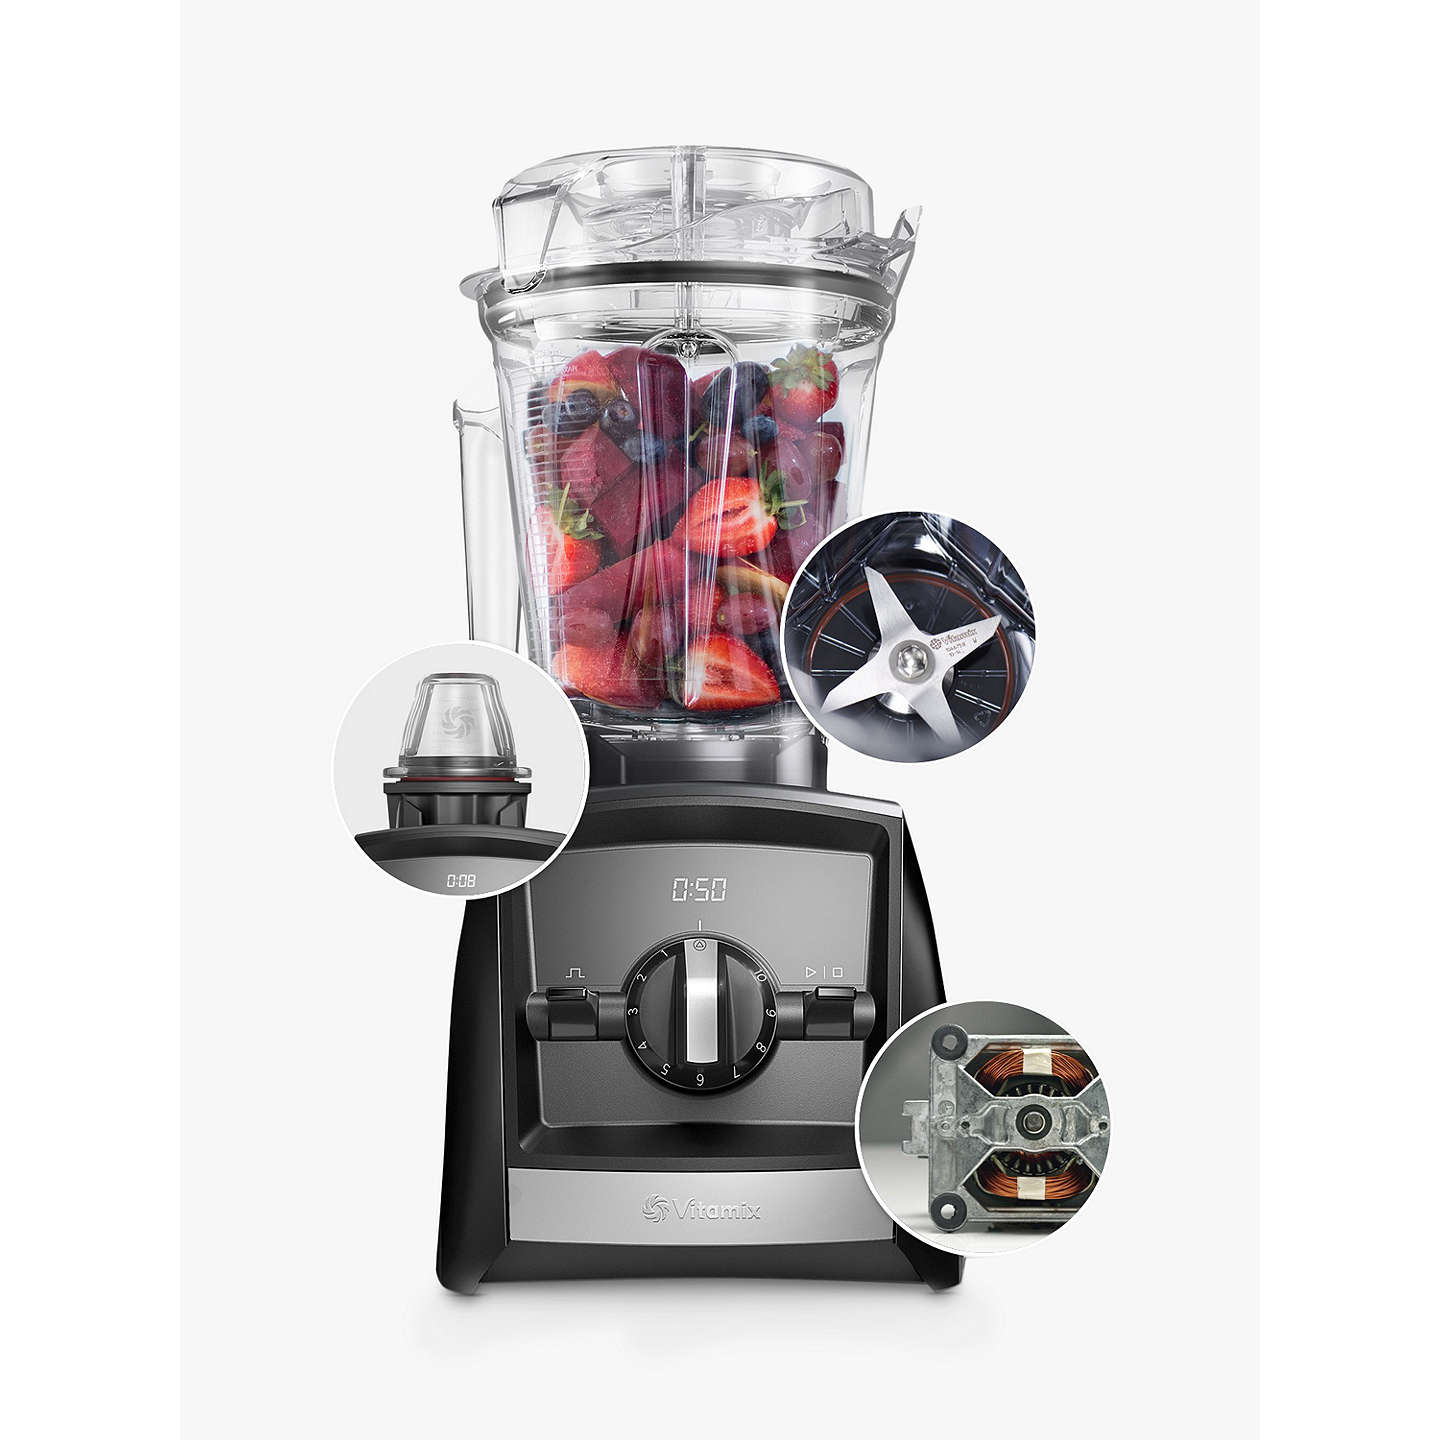 BuyVitamix® A2300i Ascent Series Blender, White Online at johnlewis.com